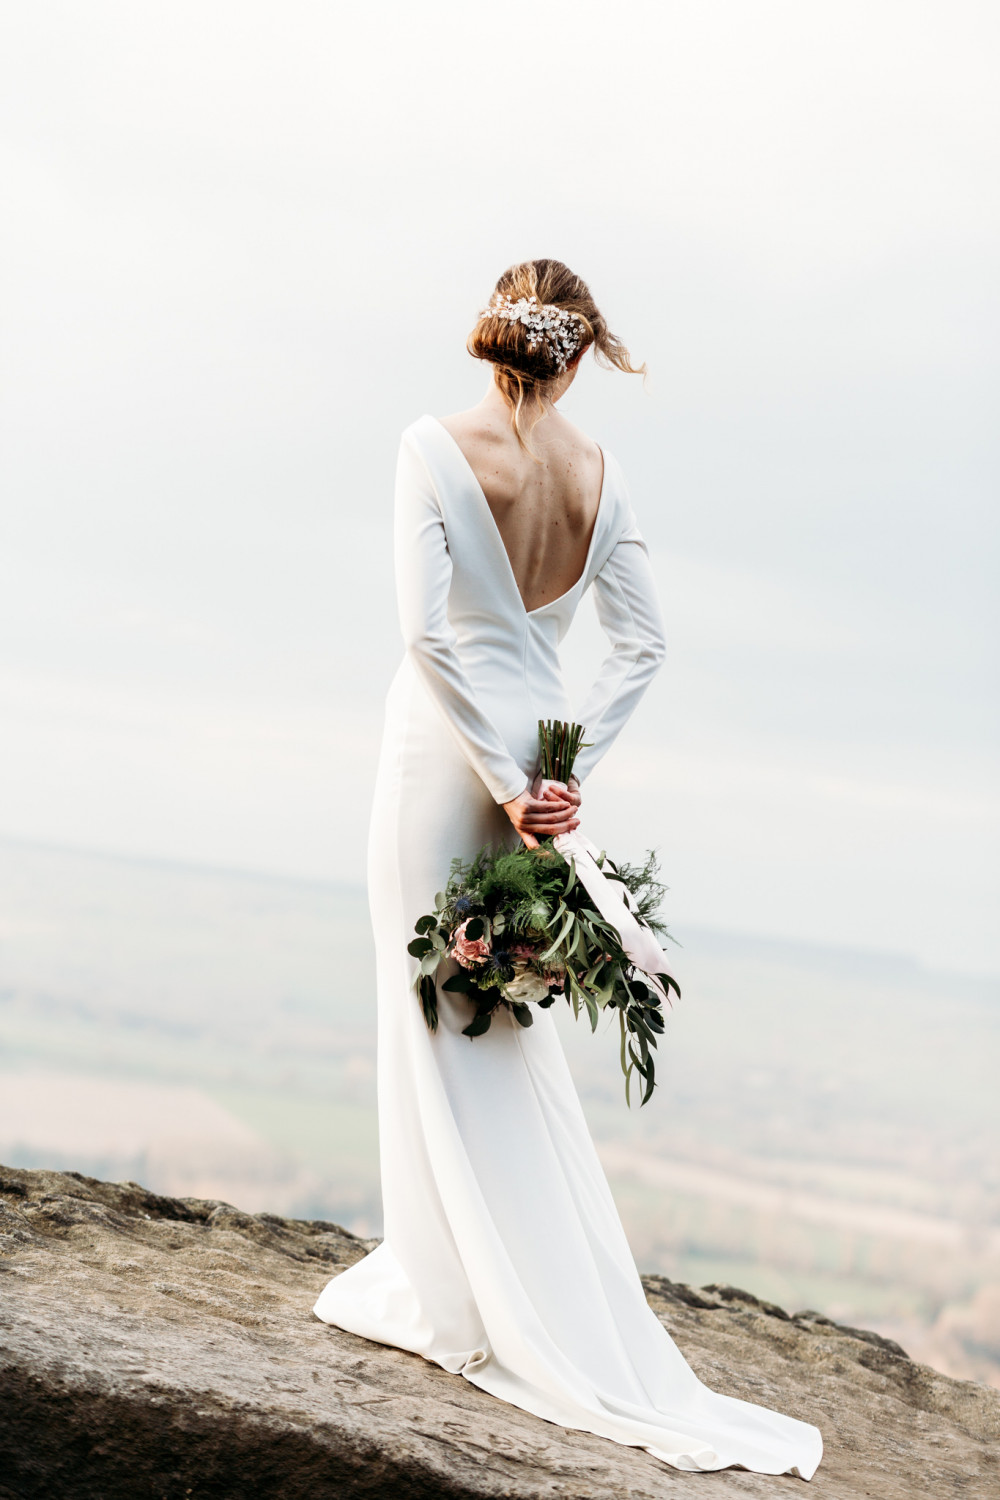 Styled shoot featured in Brides up North https://bridesupnorth.com/2019/05/09/moorland-romance-an-alluring-styled-shoot-at-the-chilli-barn/ 